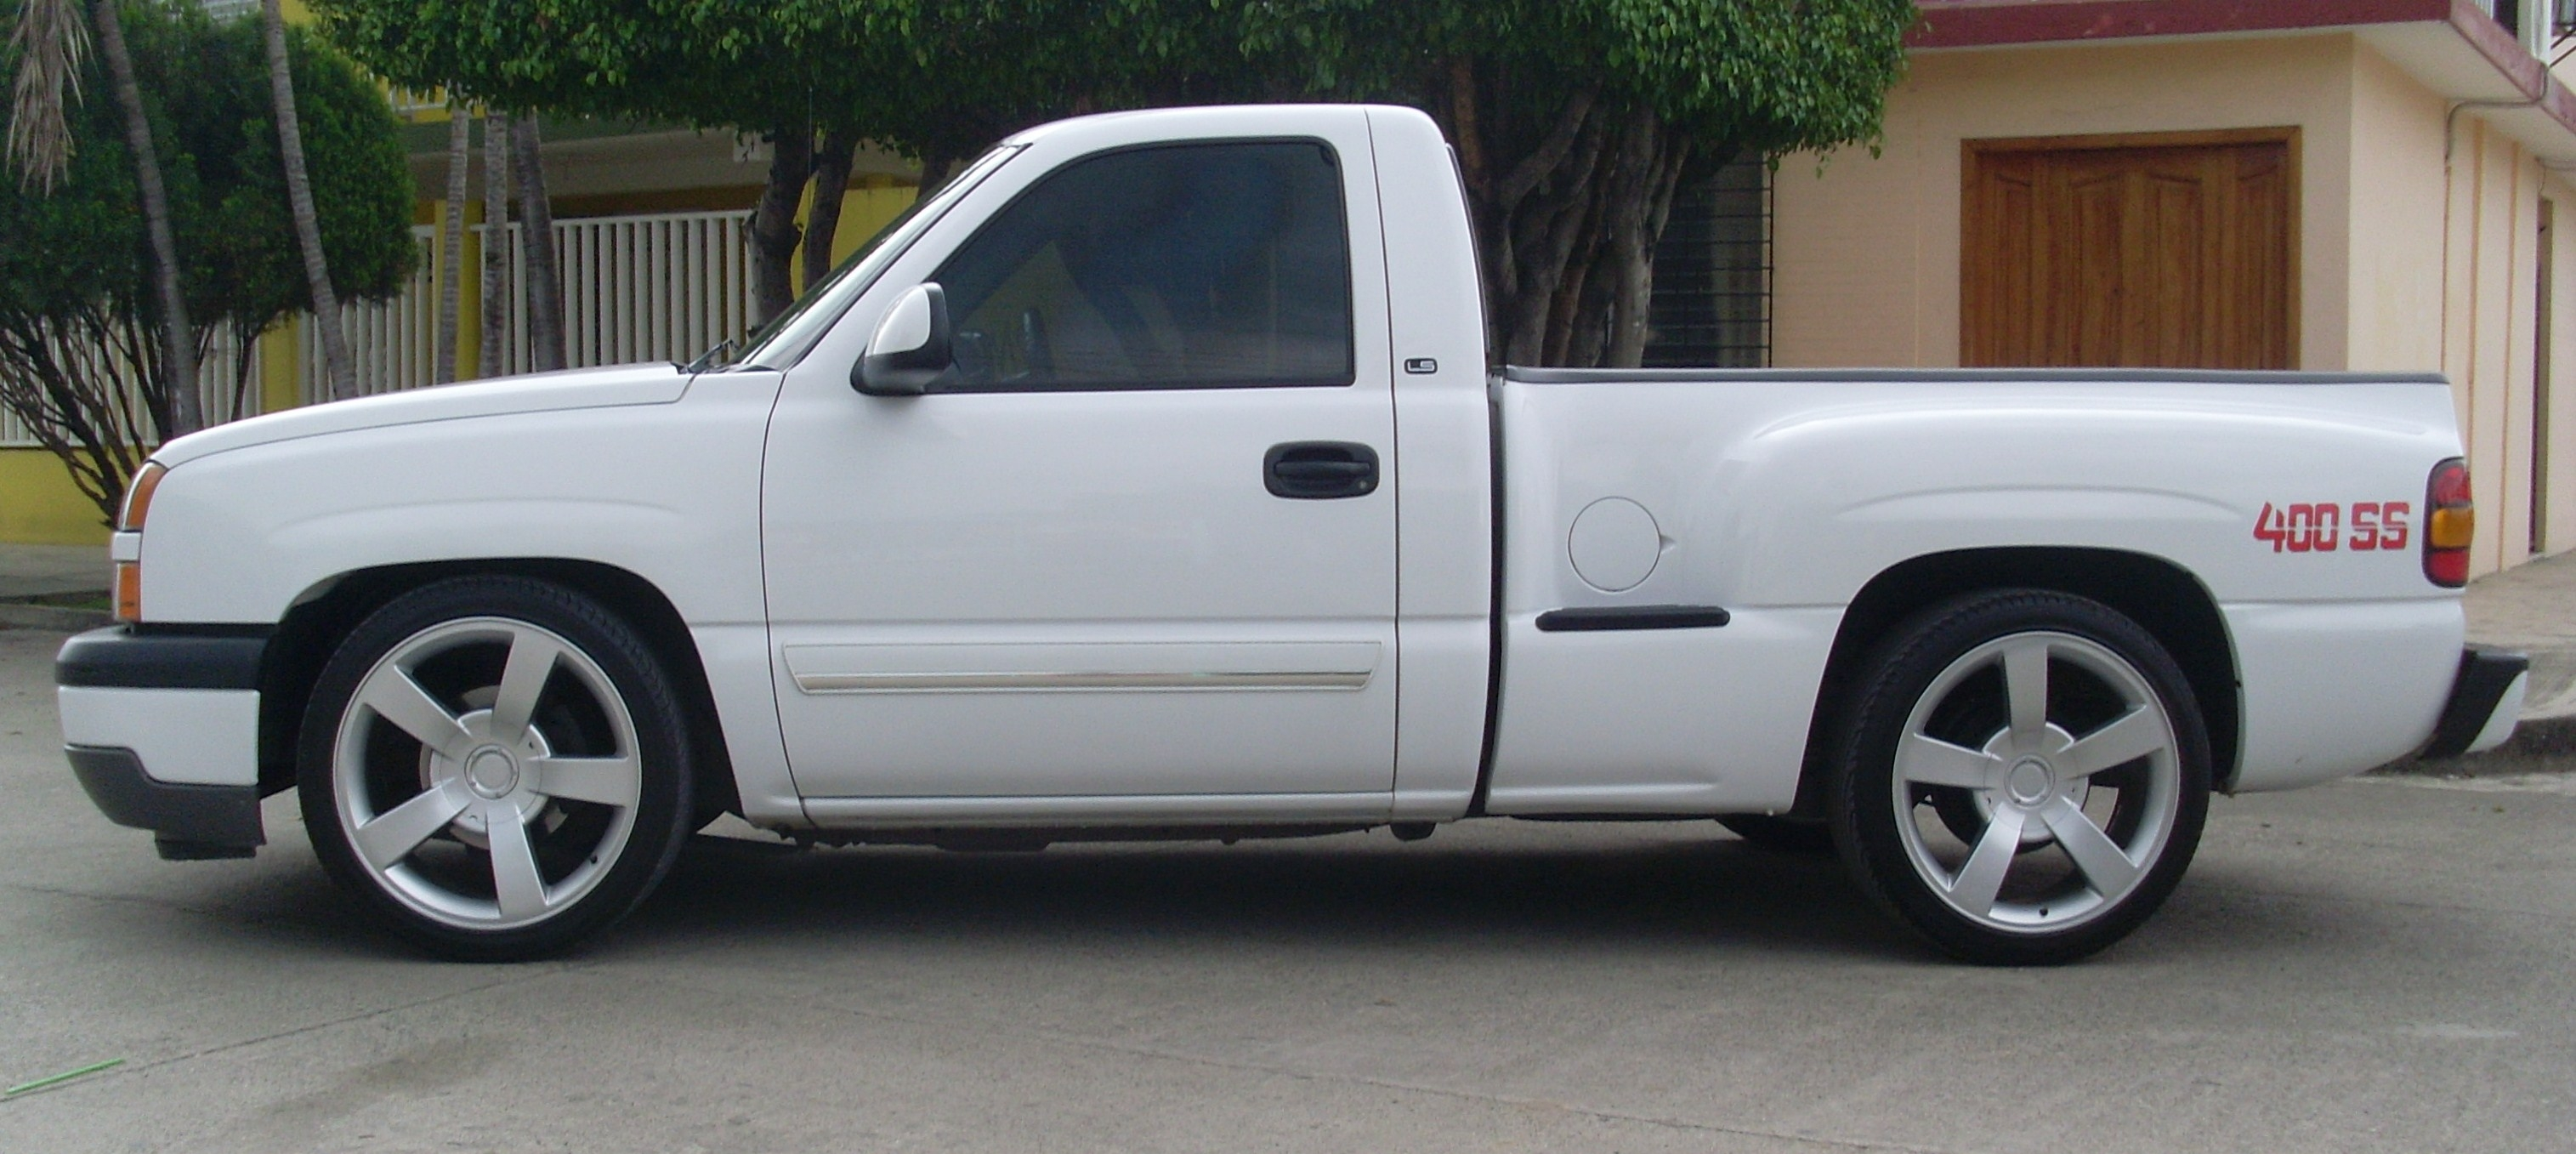 400ssgarces 2005 Chevrolet Silverado 1500 Regular Cab 14427435